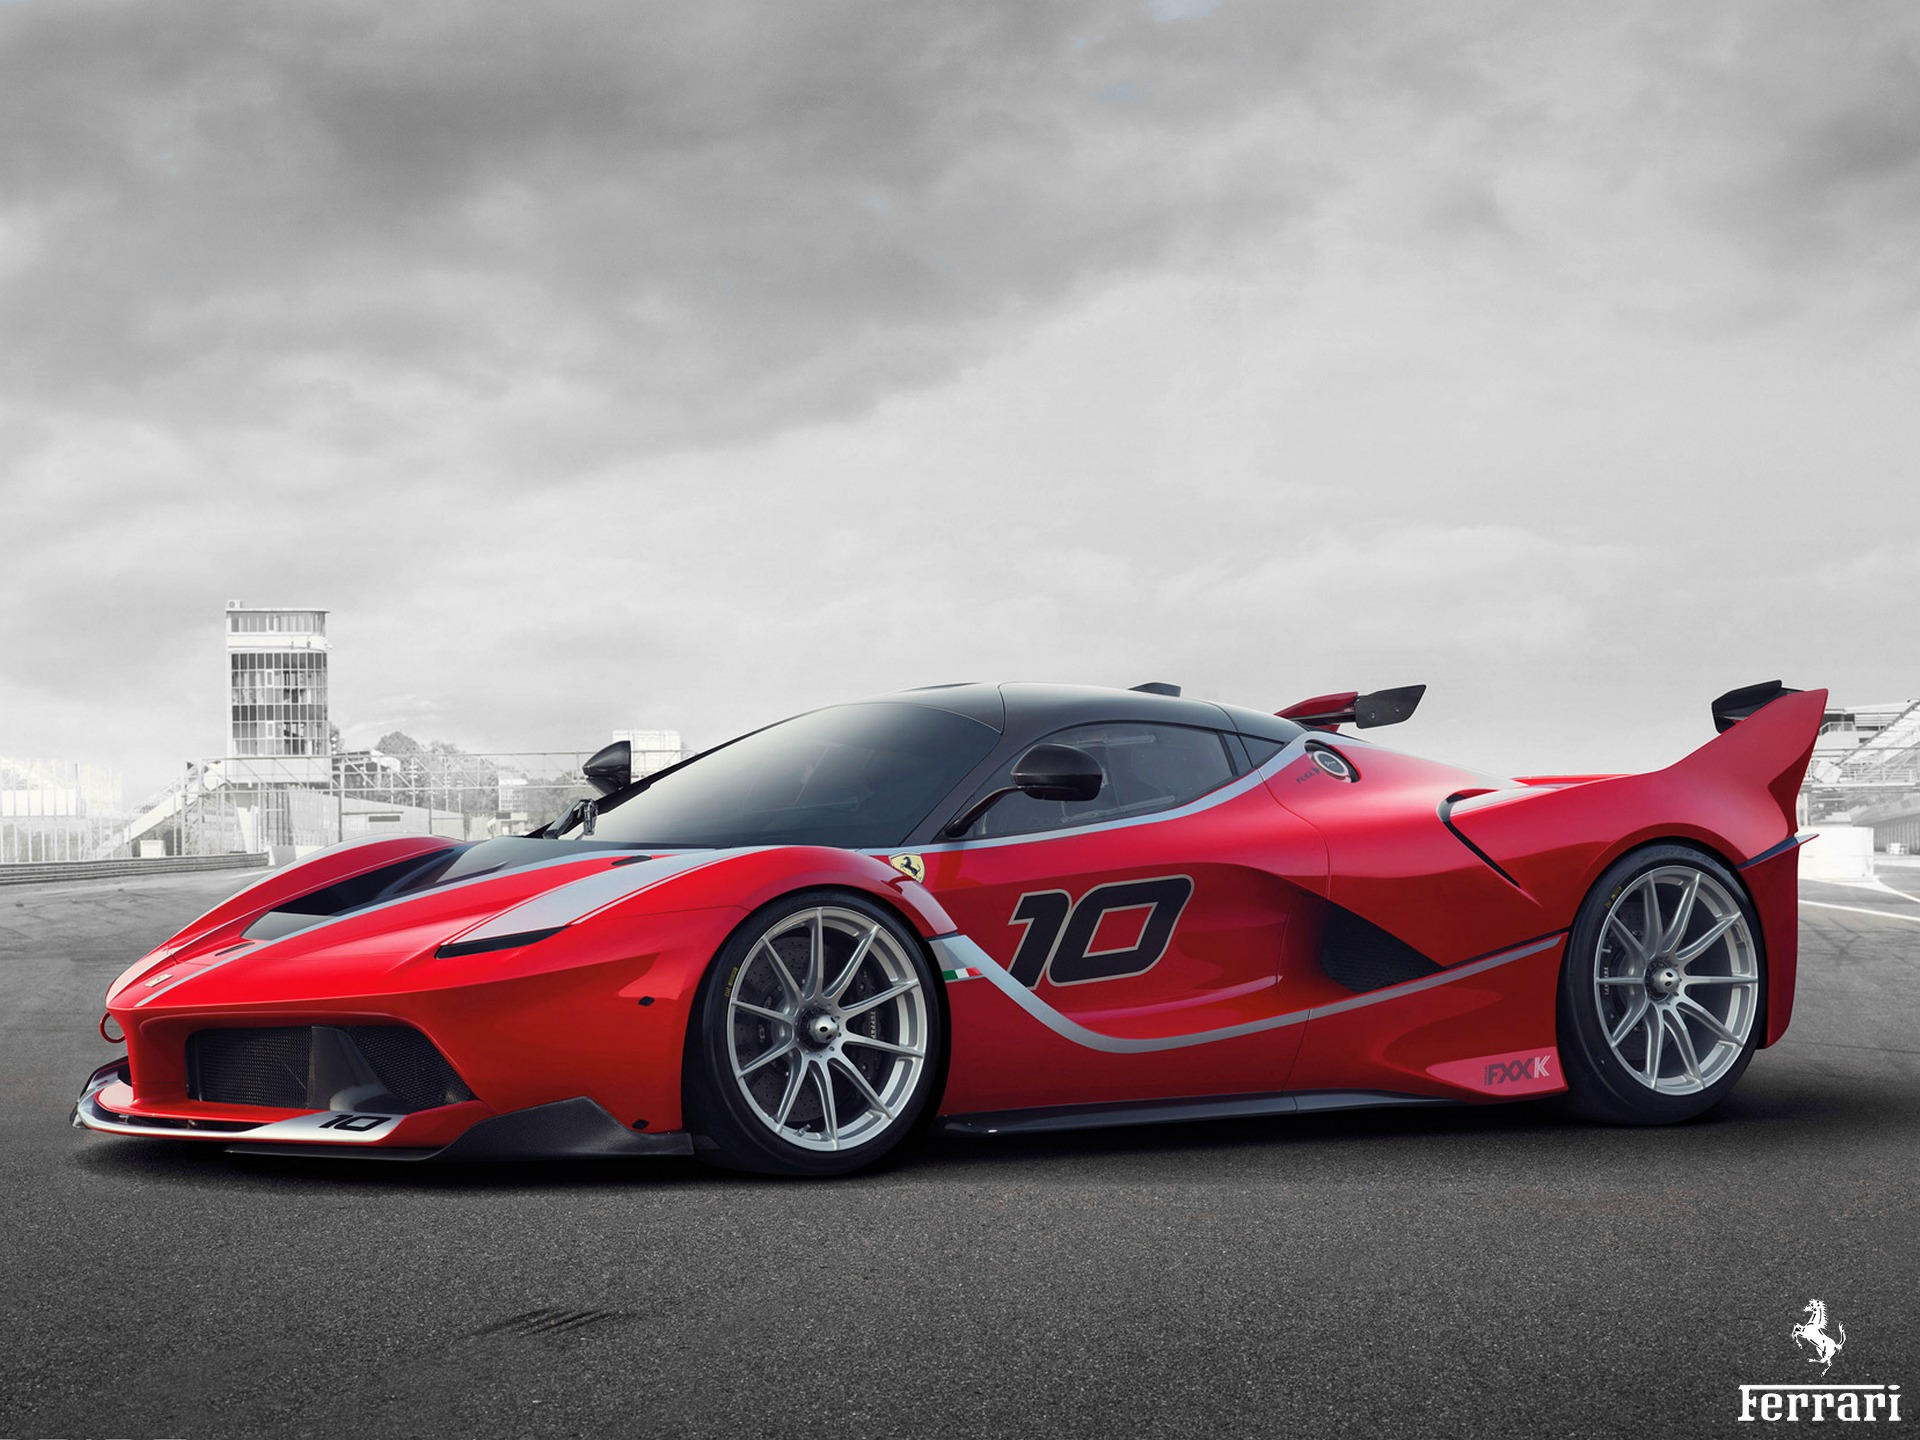 Ferrari fxx k 2015 fond ecran inspirats for Photo de fond ecran hd